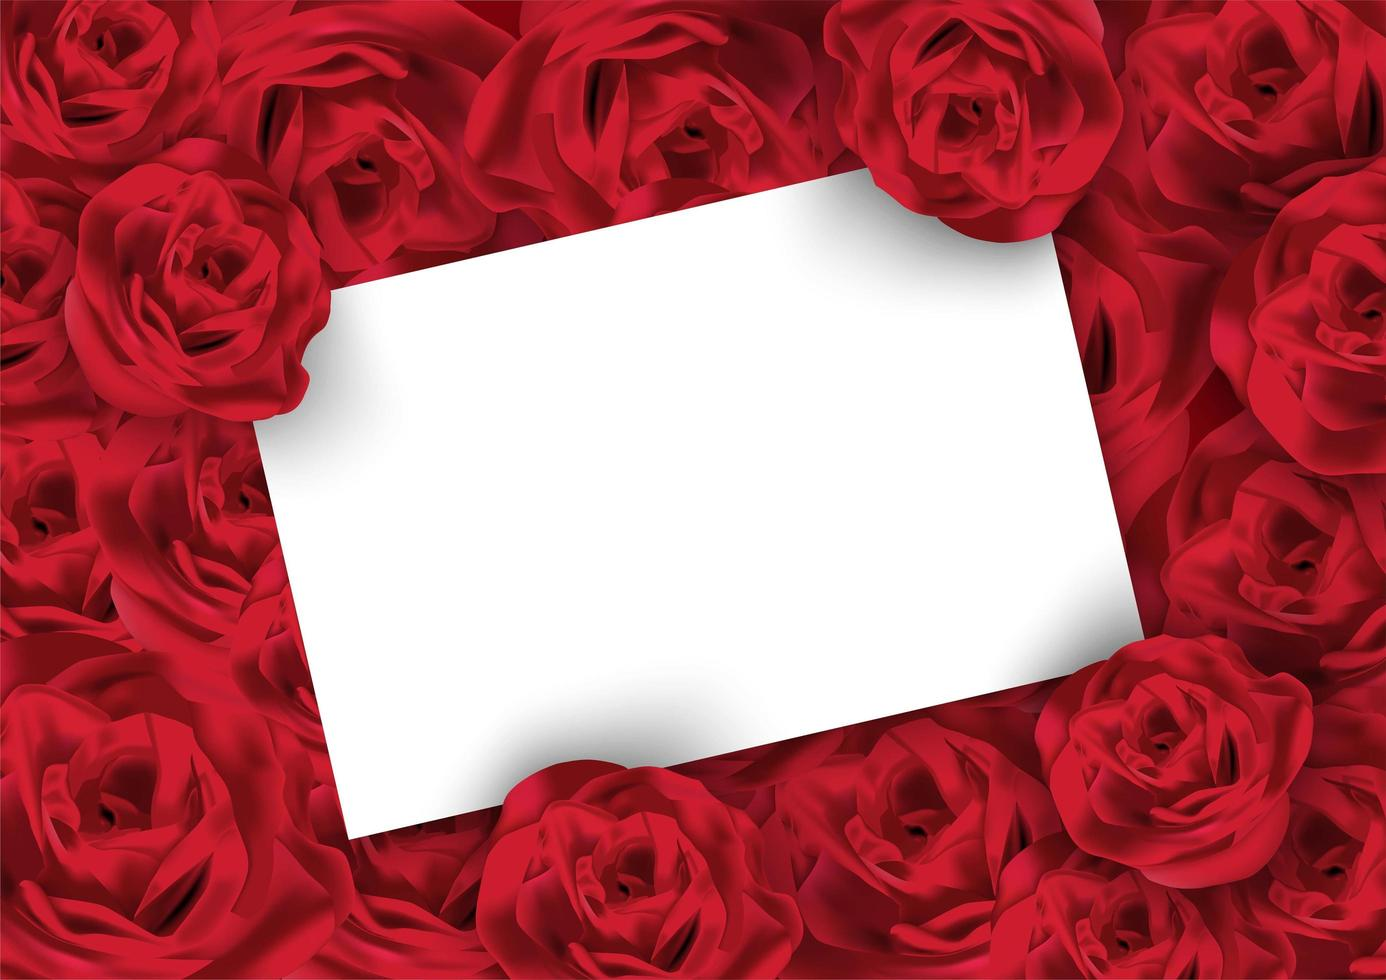 Valentines day rose background with white blank card - Download Free Vectors, Clipart Graphics ...